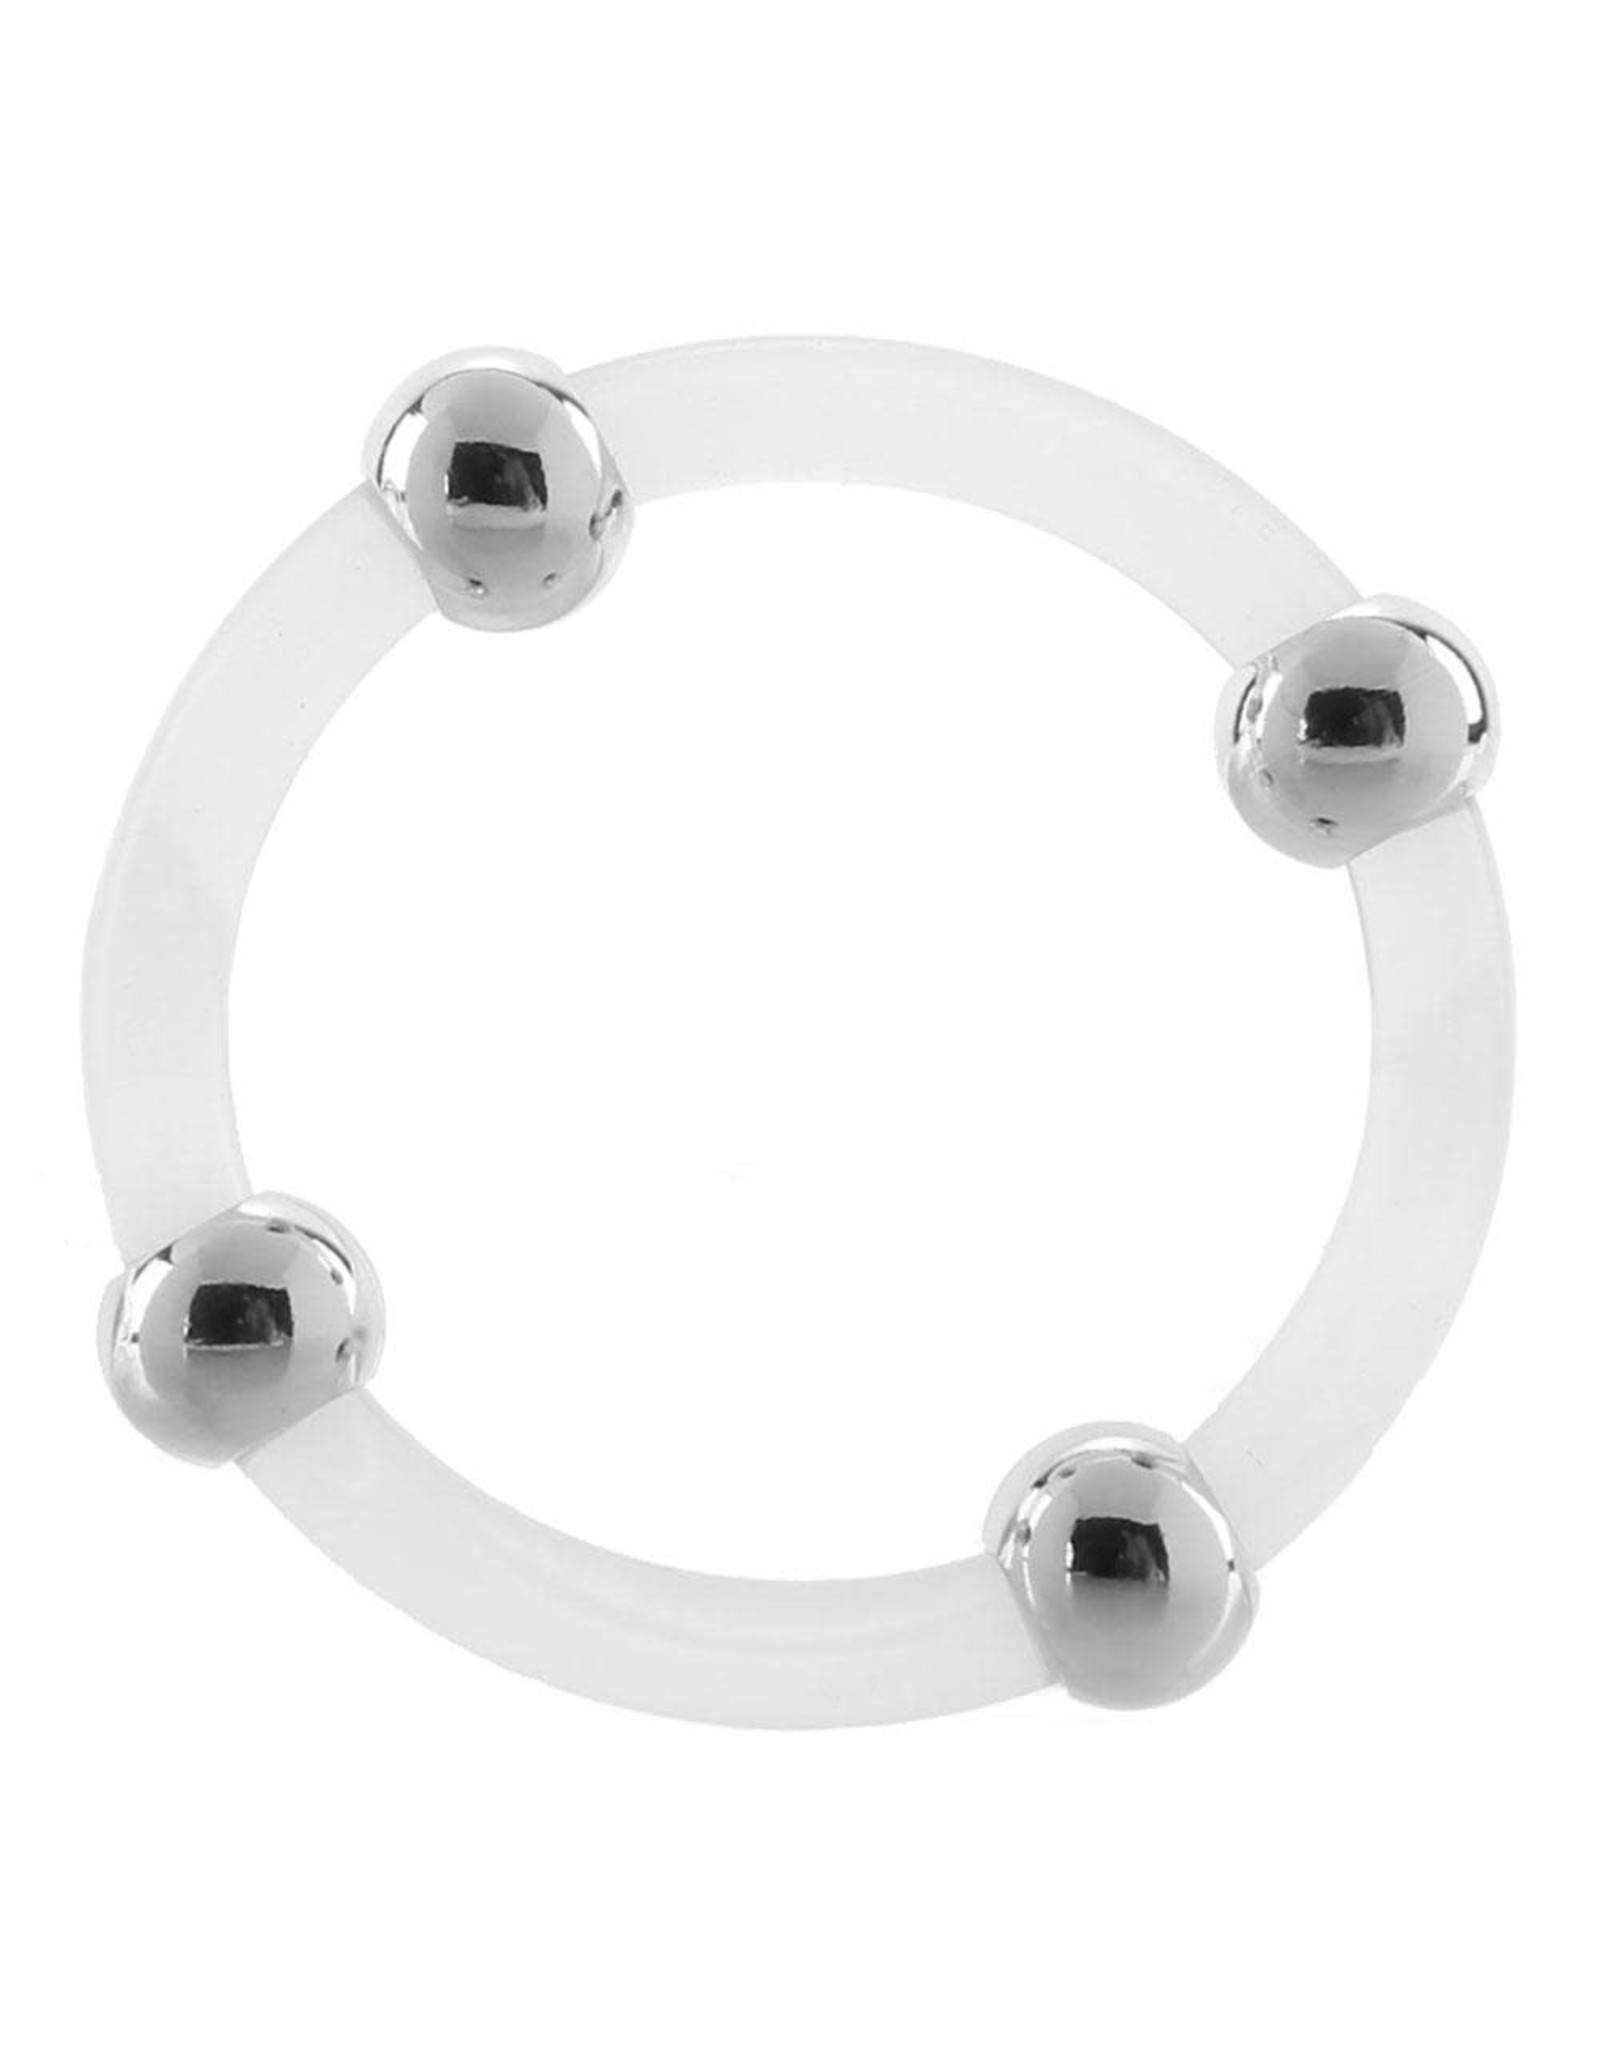 CALEXOTICS - STEEL BEADED SILICONE COCK RING - LARGE